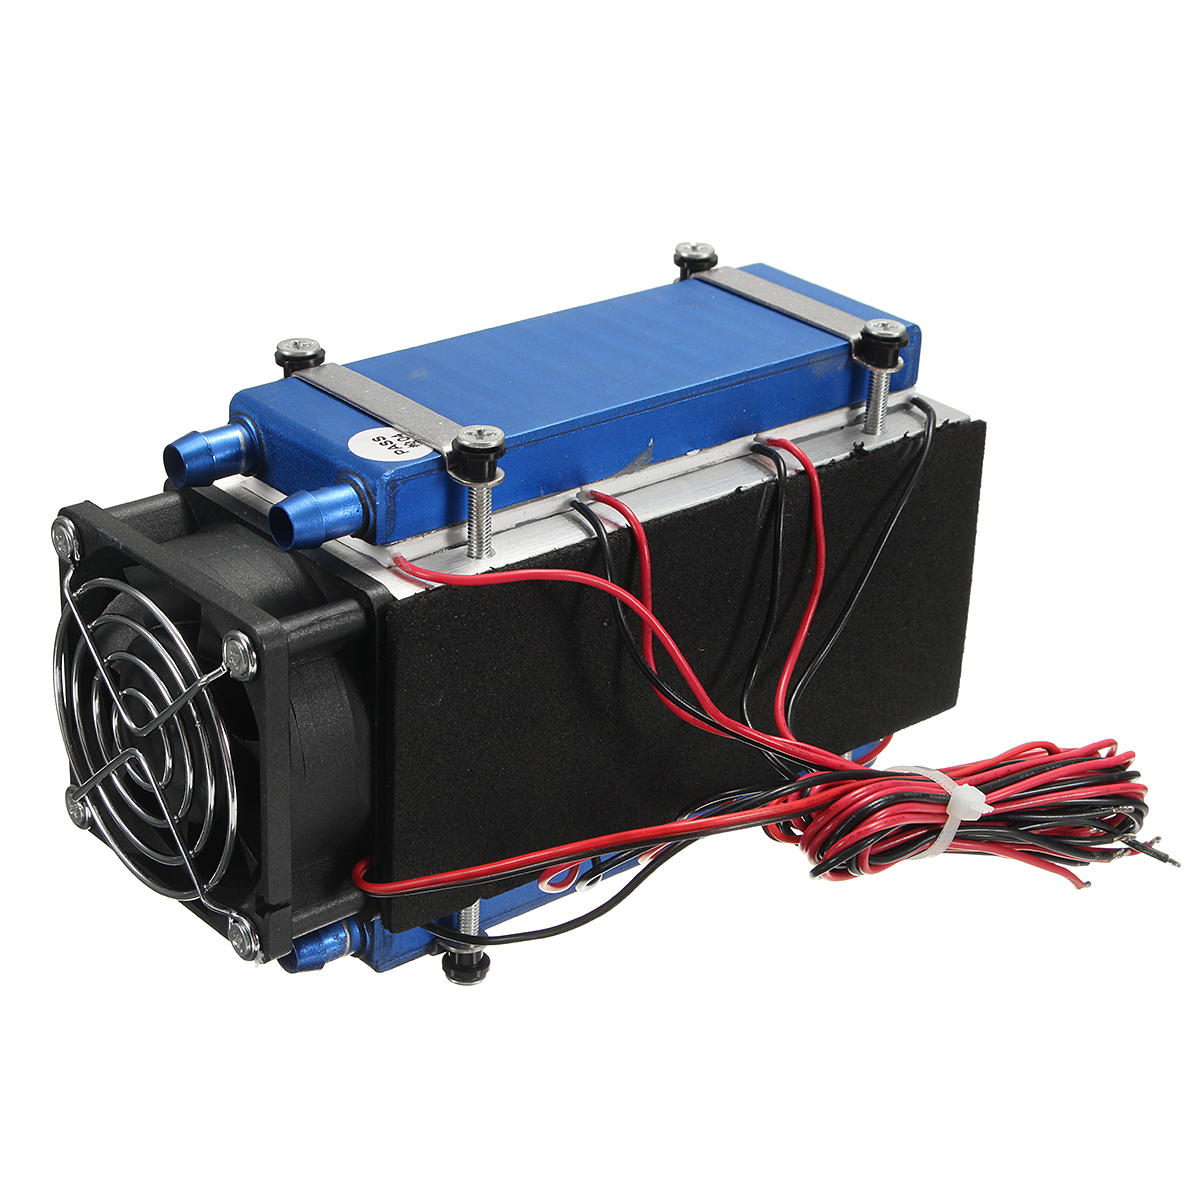 420w 6 Chip Semiconductor Refrigeration Cooler Air Cooling Equipment Diy Electrical Wiring South Africa Radiator